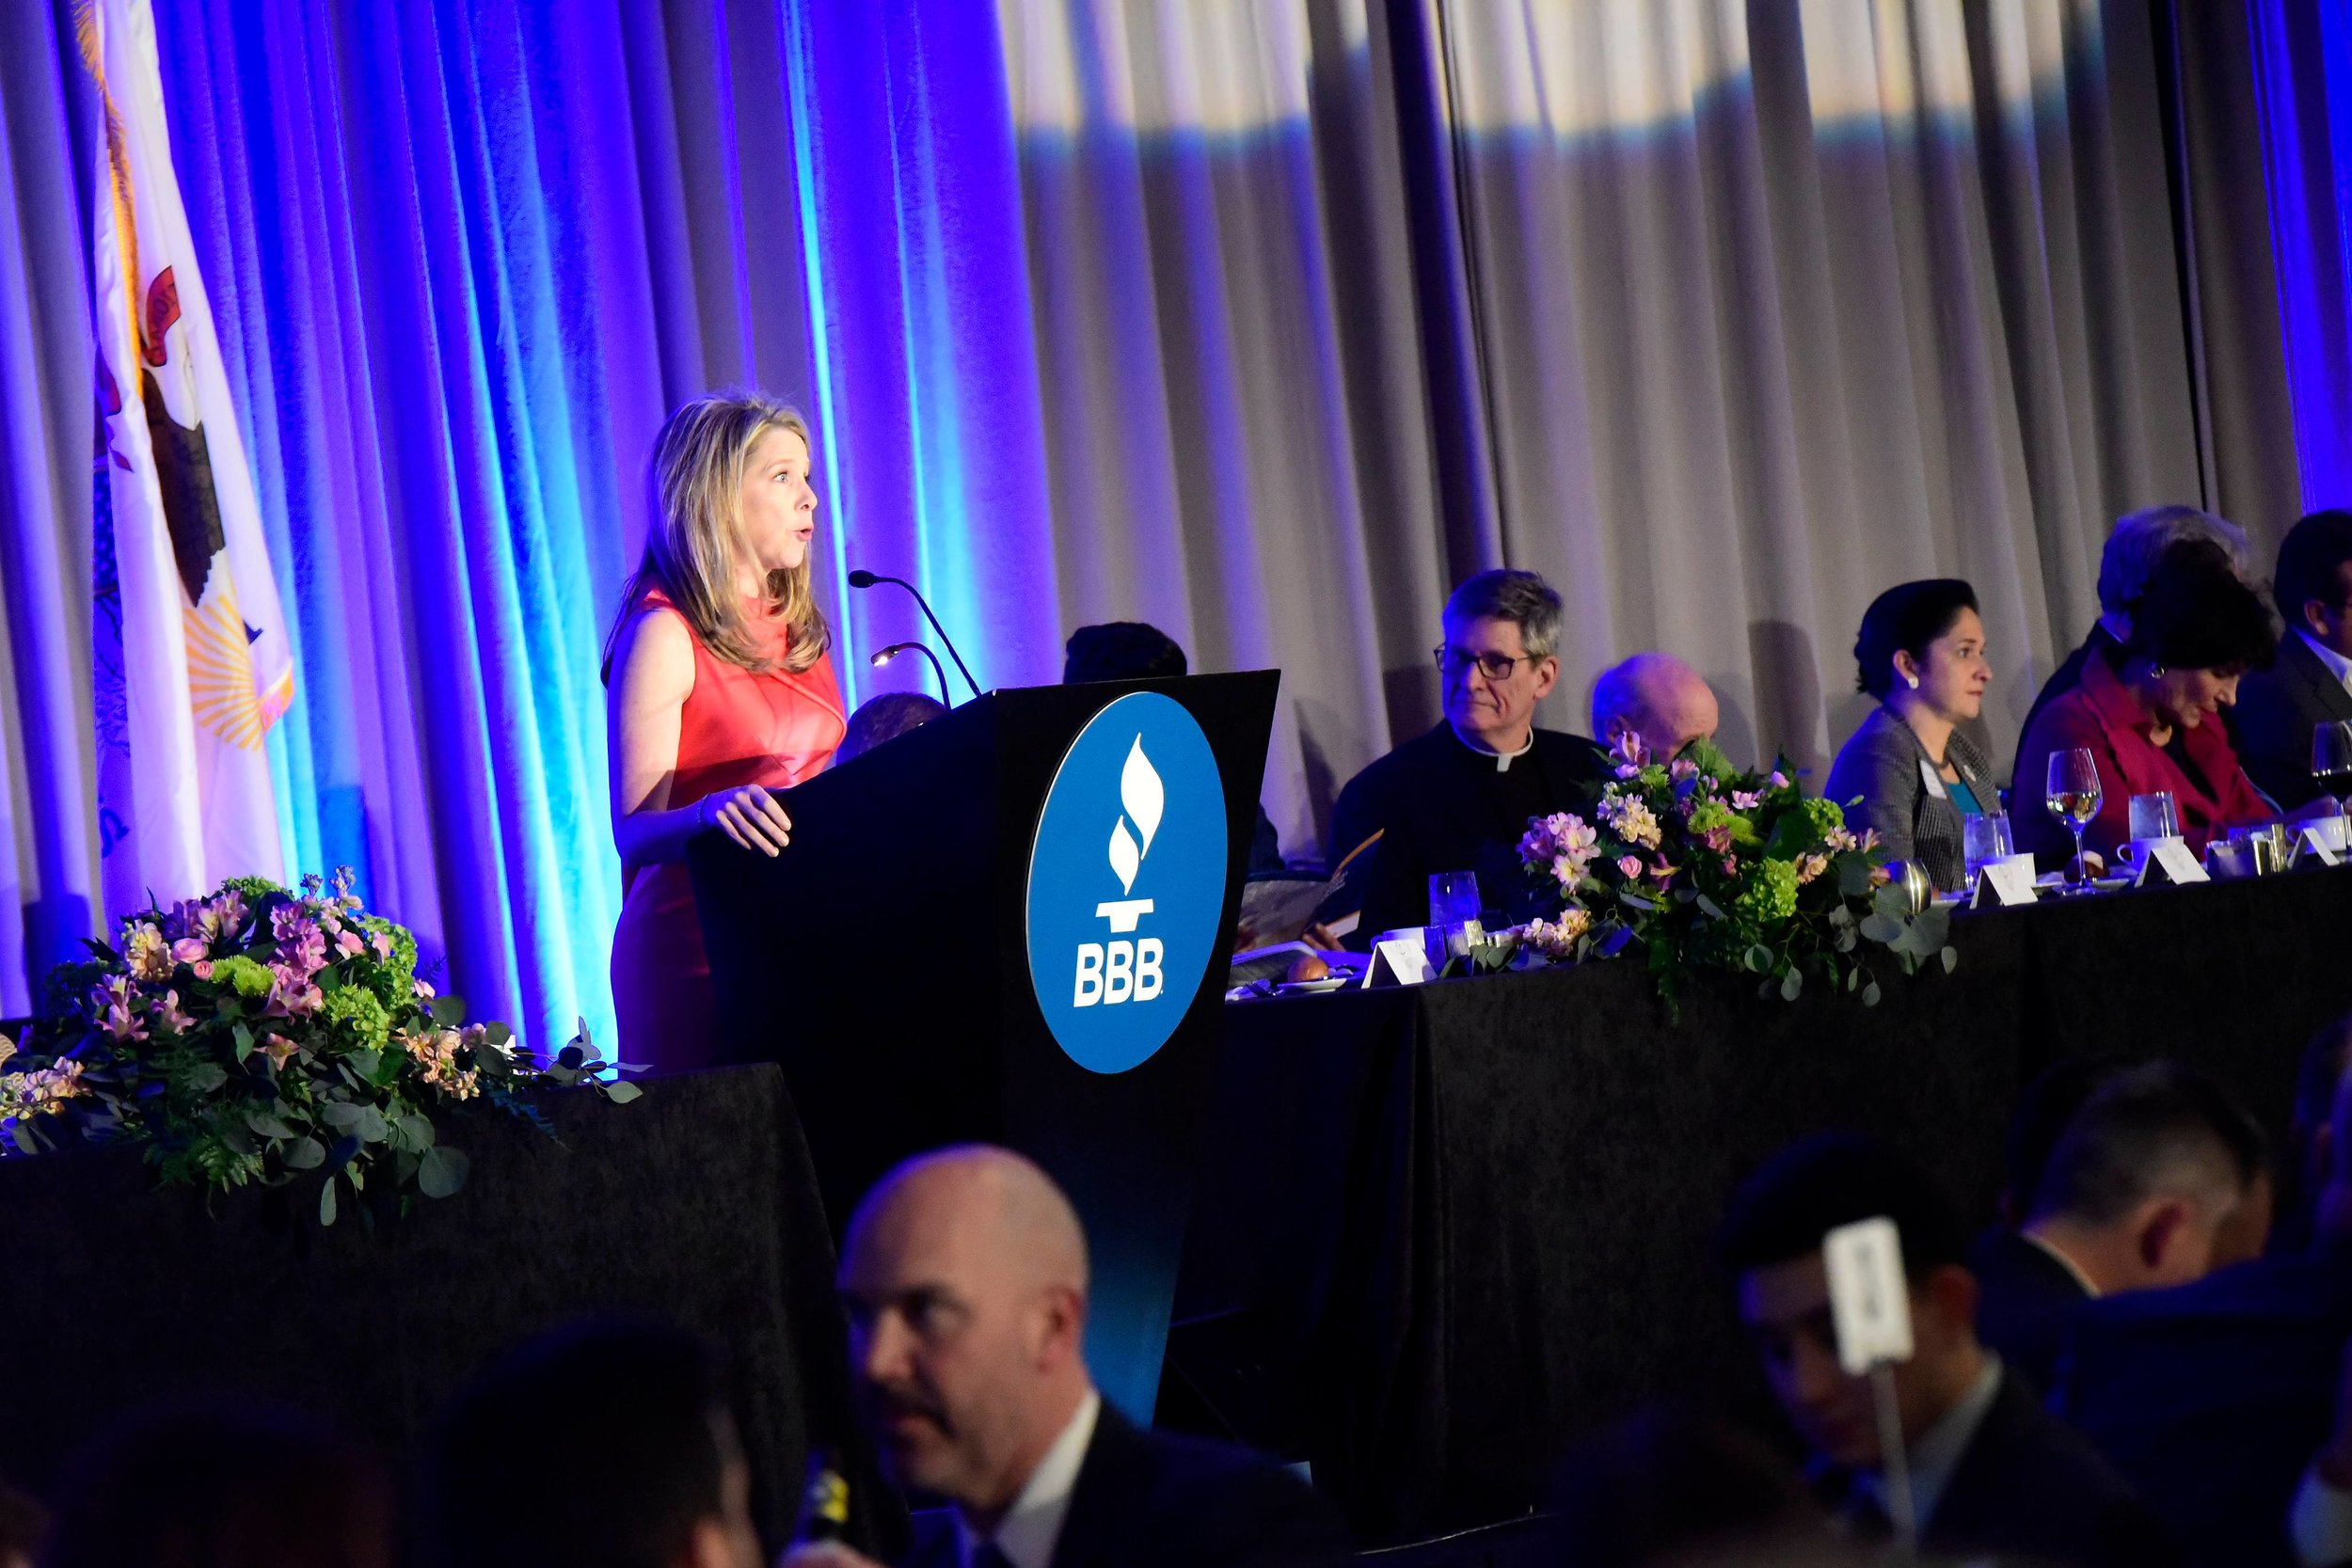 Master of Ceremonies: BBB of Chicago Annual Dinner Meeting  1000 Business Leaders Attended